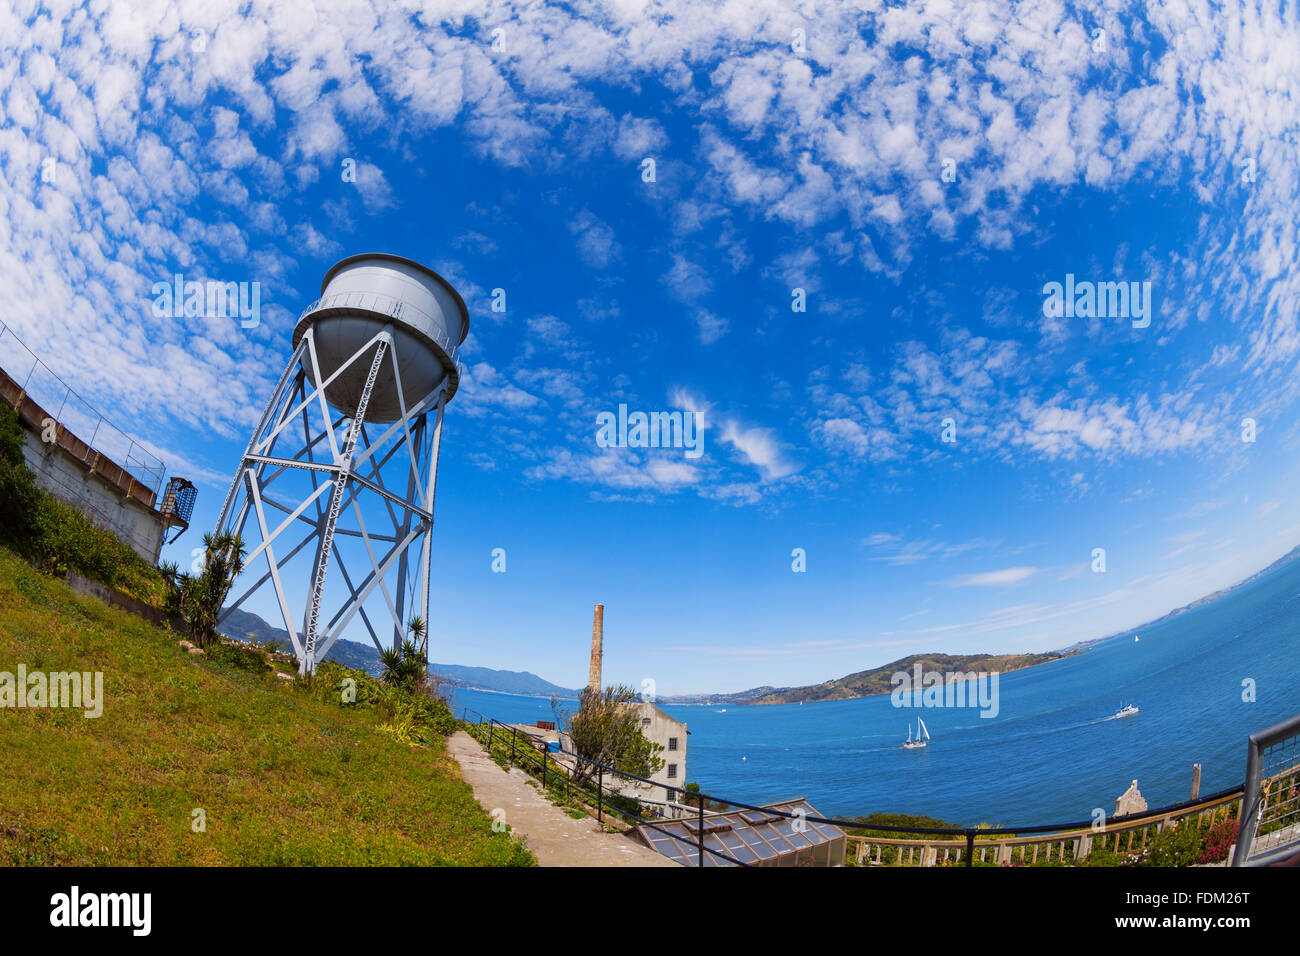 Water tower in Alcatraz island and SF bay - Stock Image